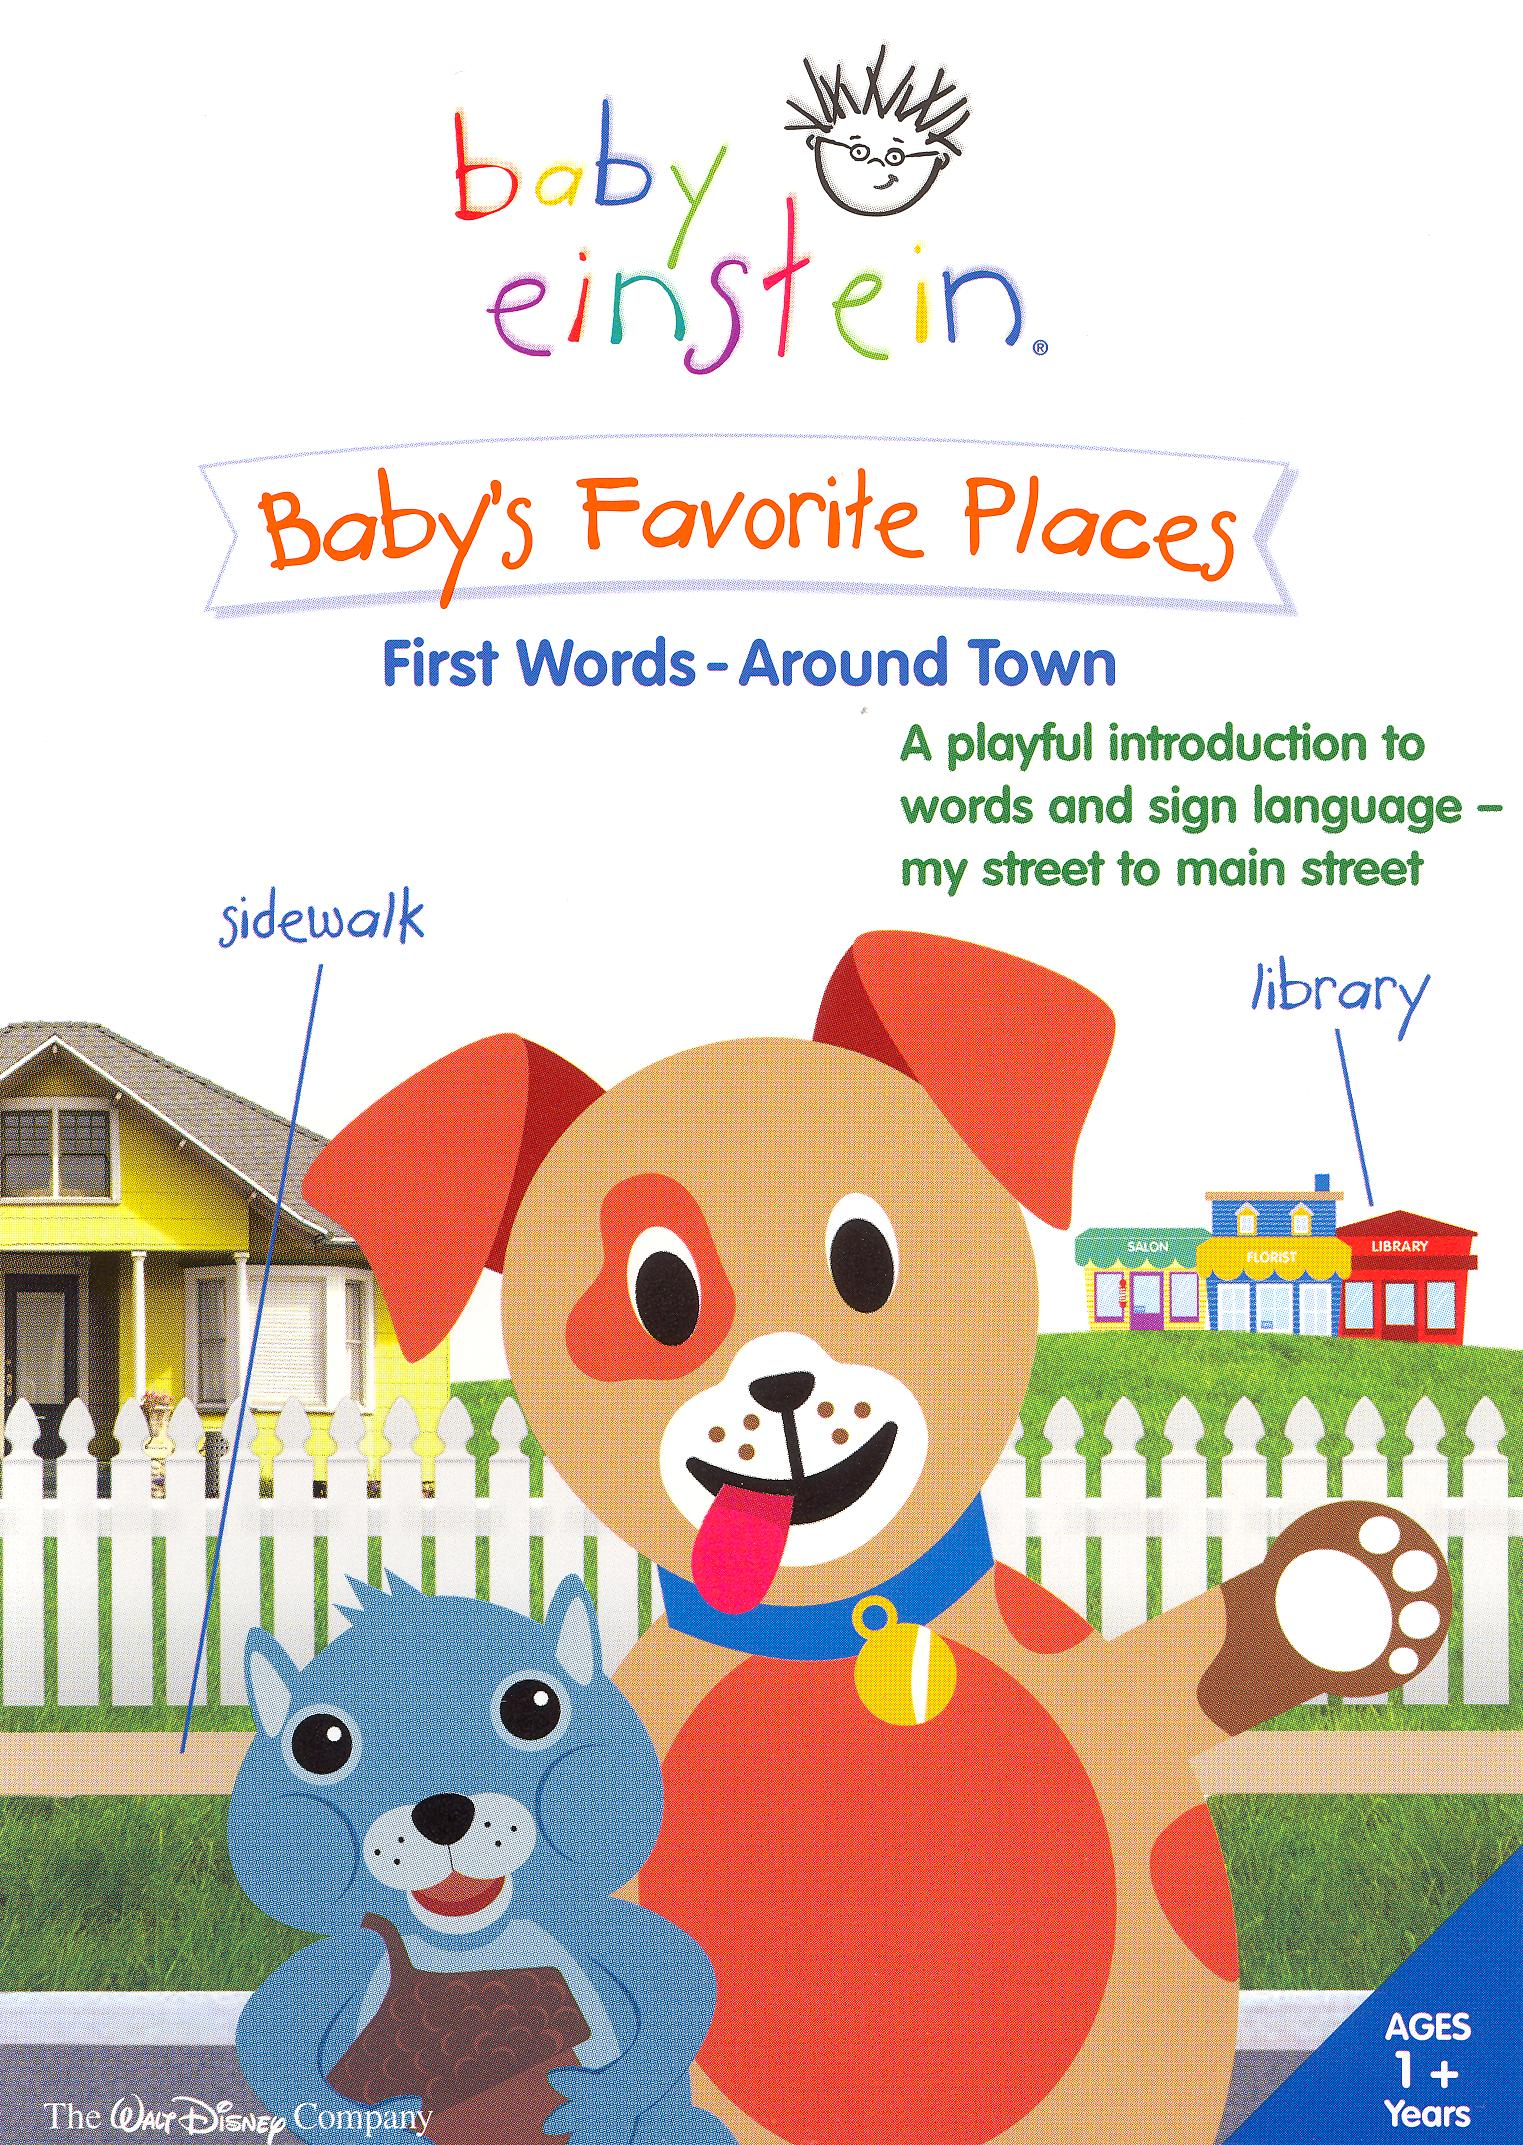 Baby Einstein: Baby's Favorite Places